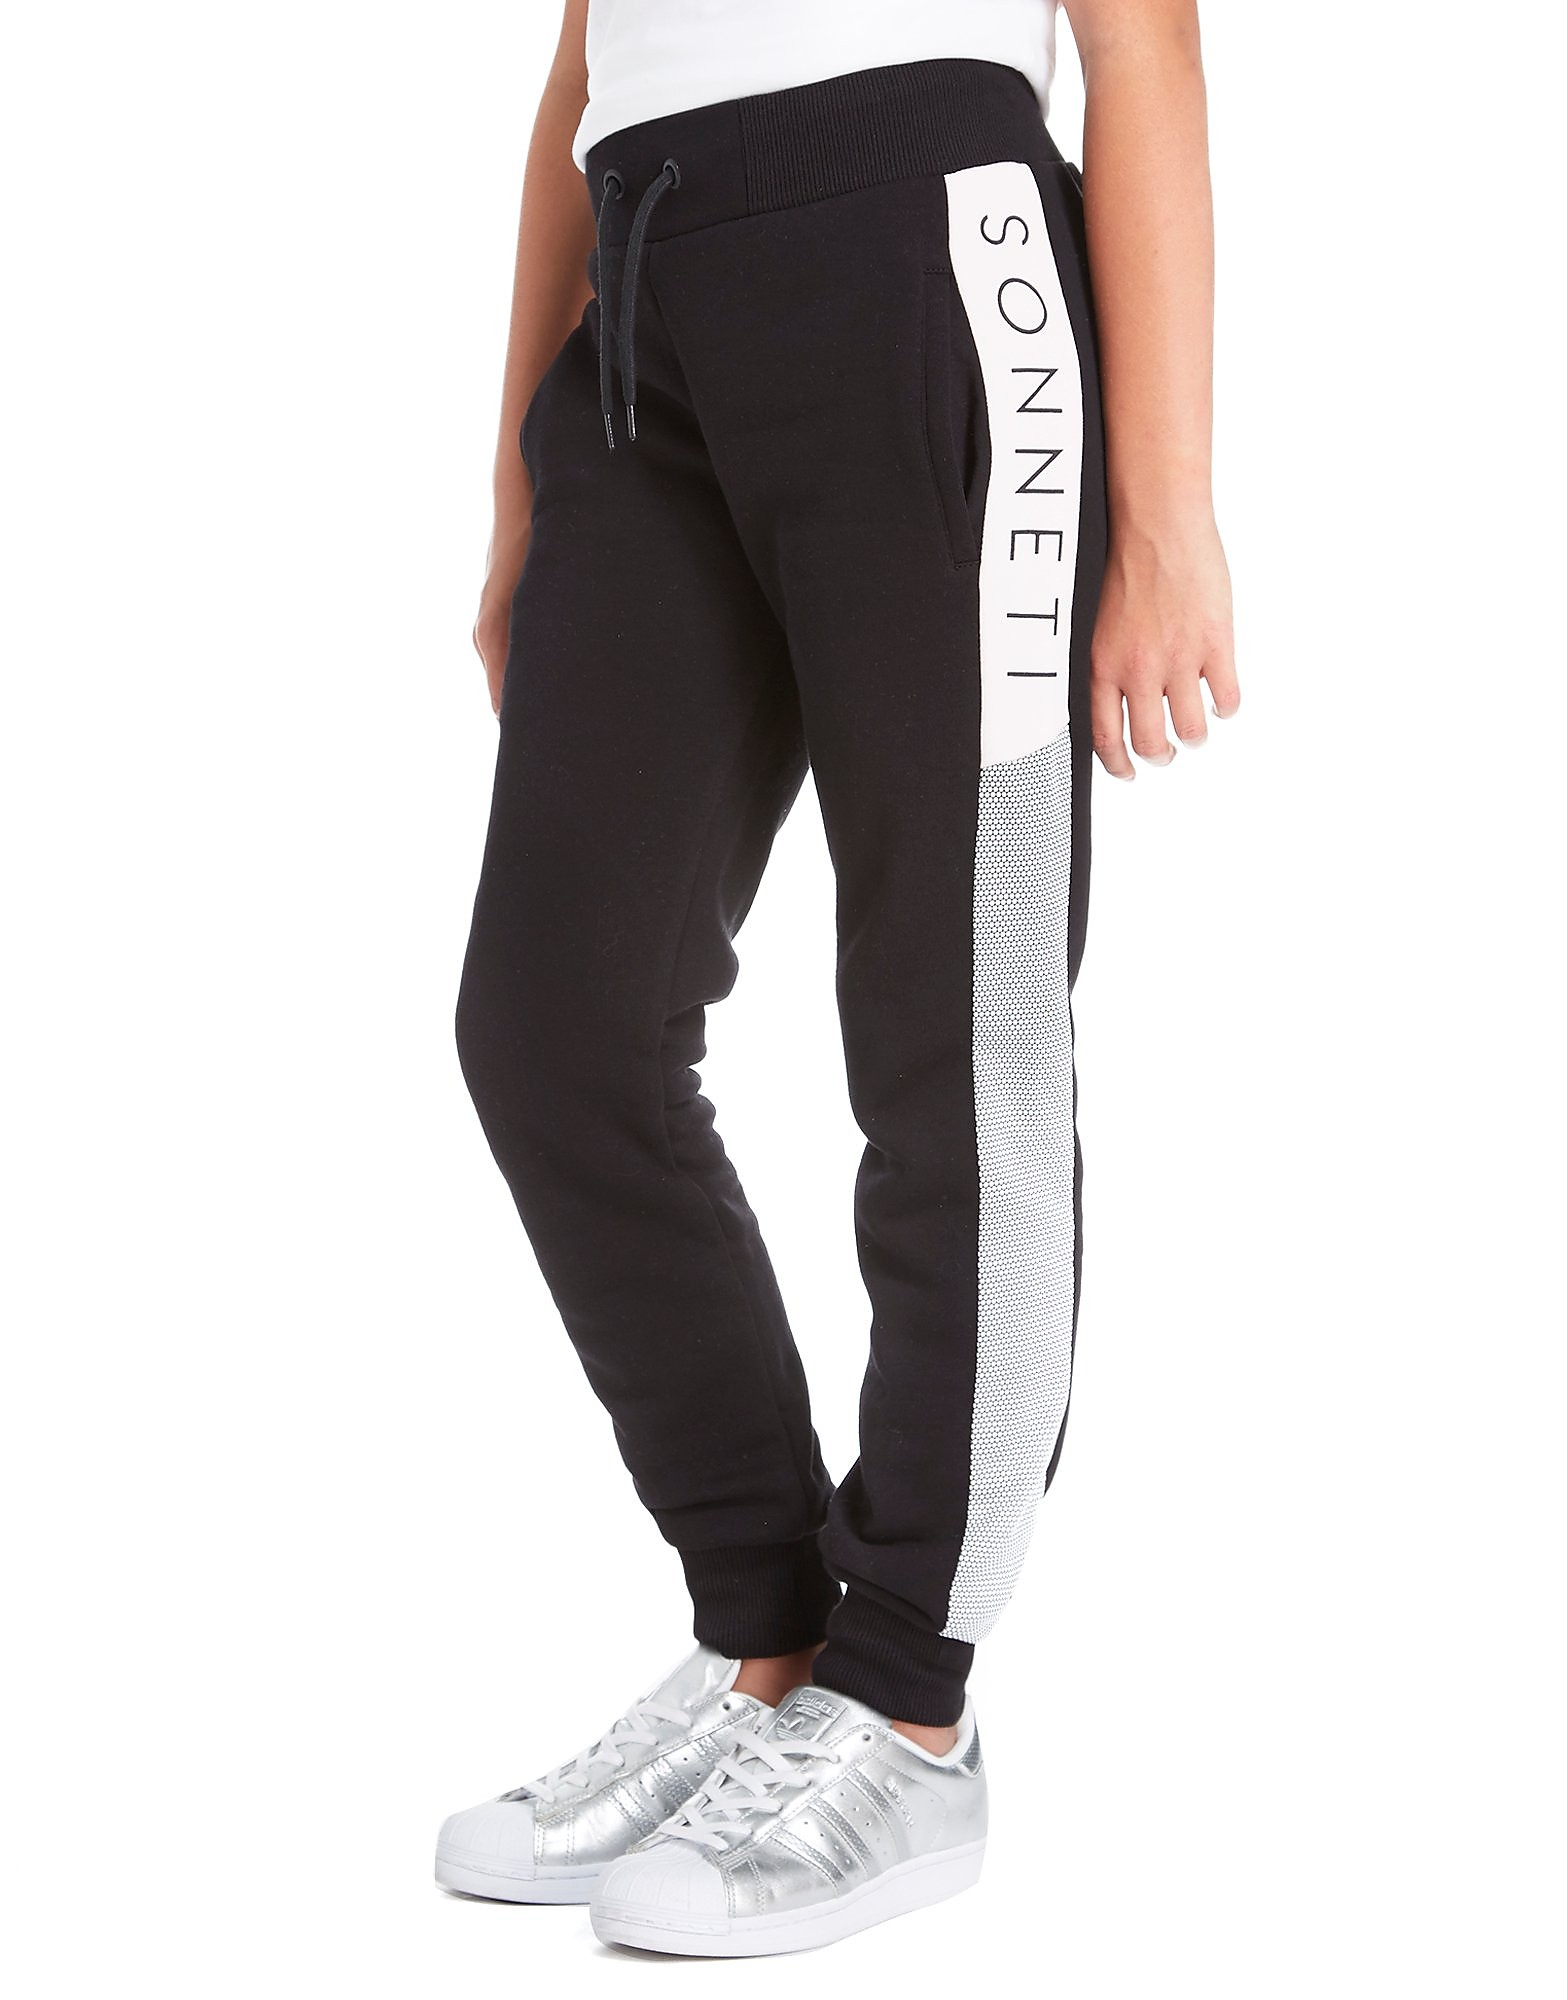 Sonneti Girls' Blocker Jogging Pants Junior